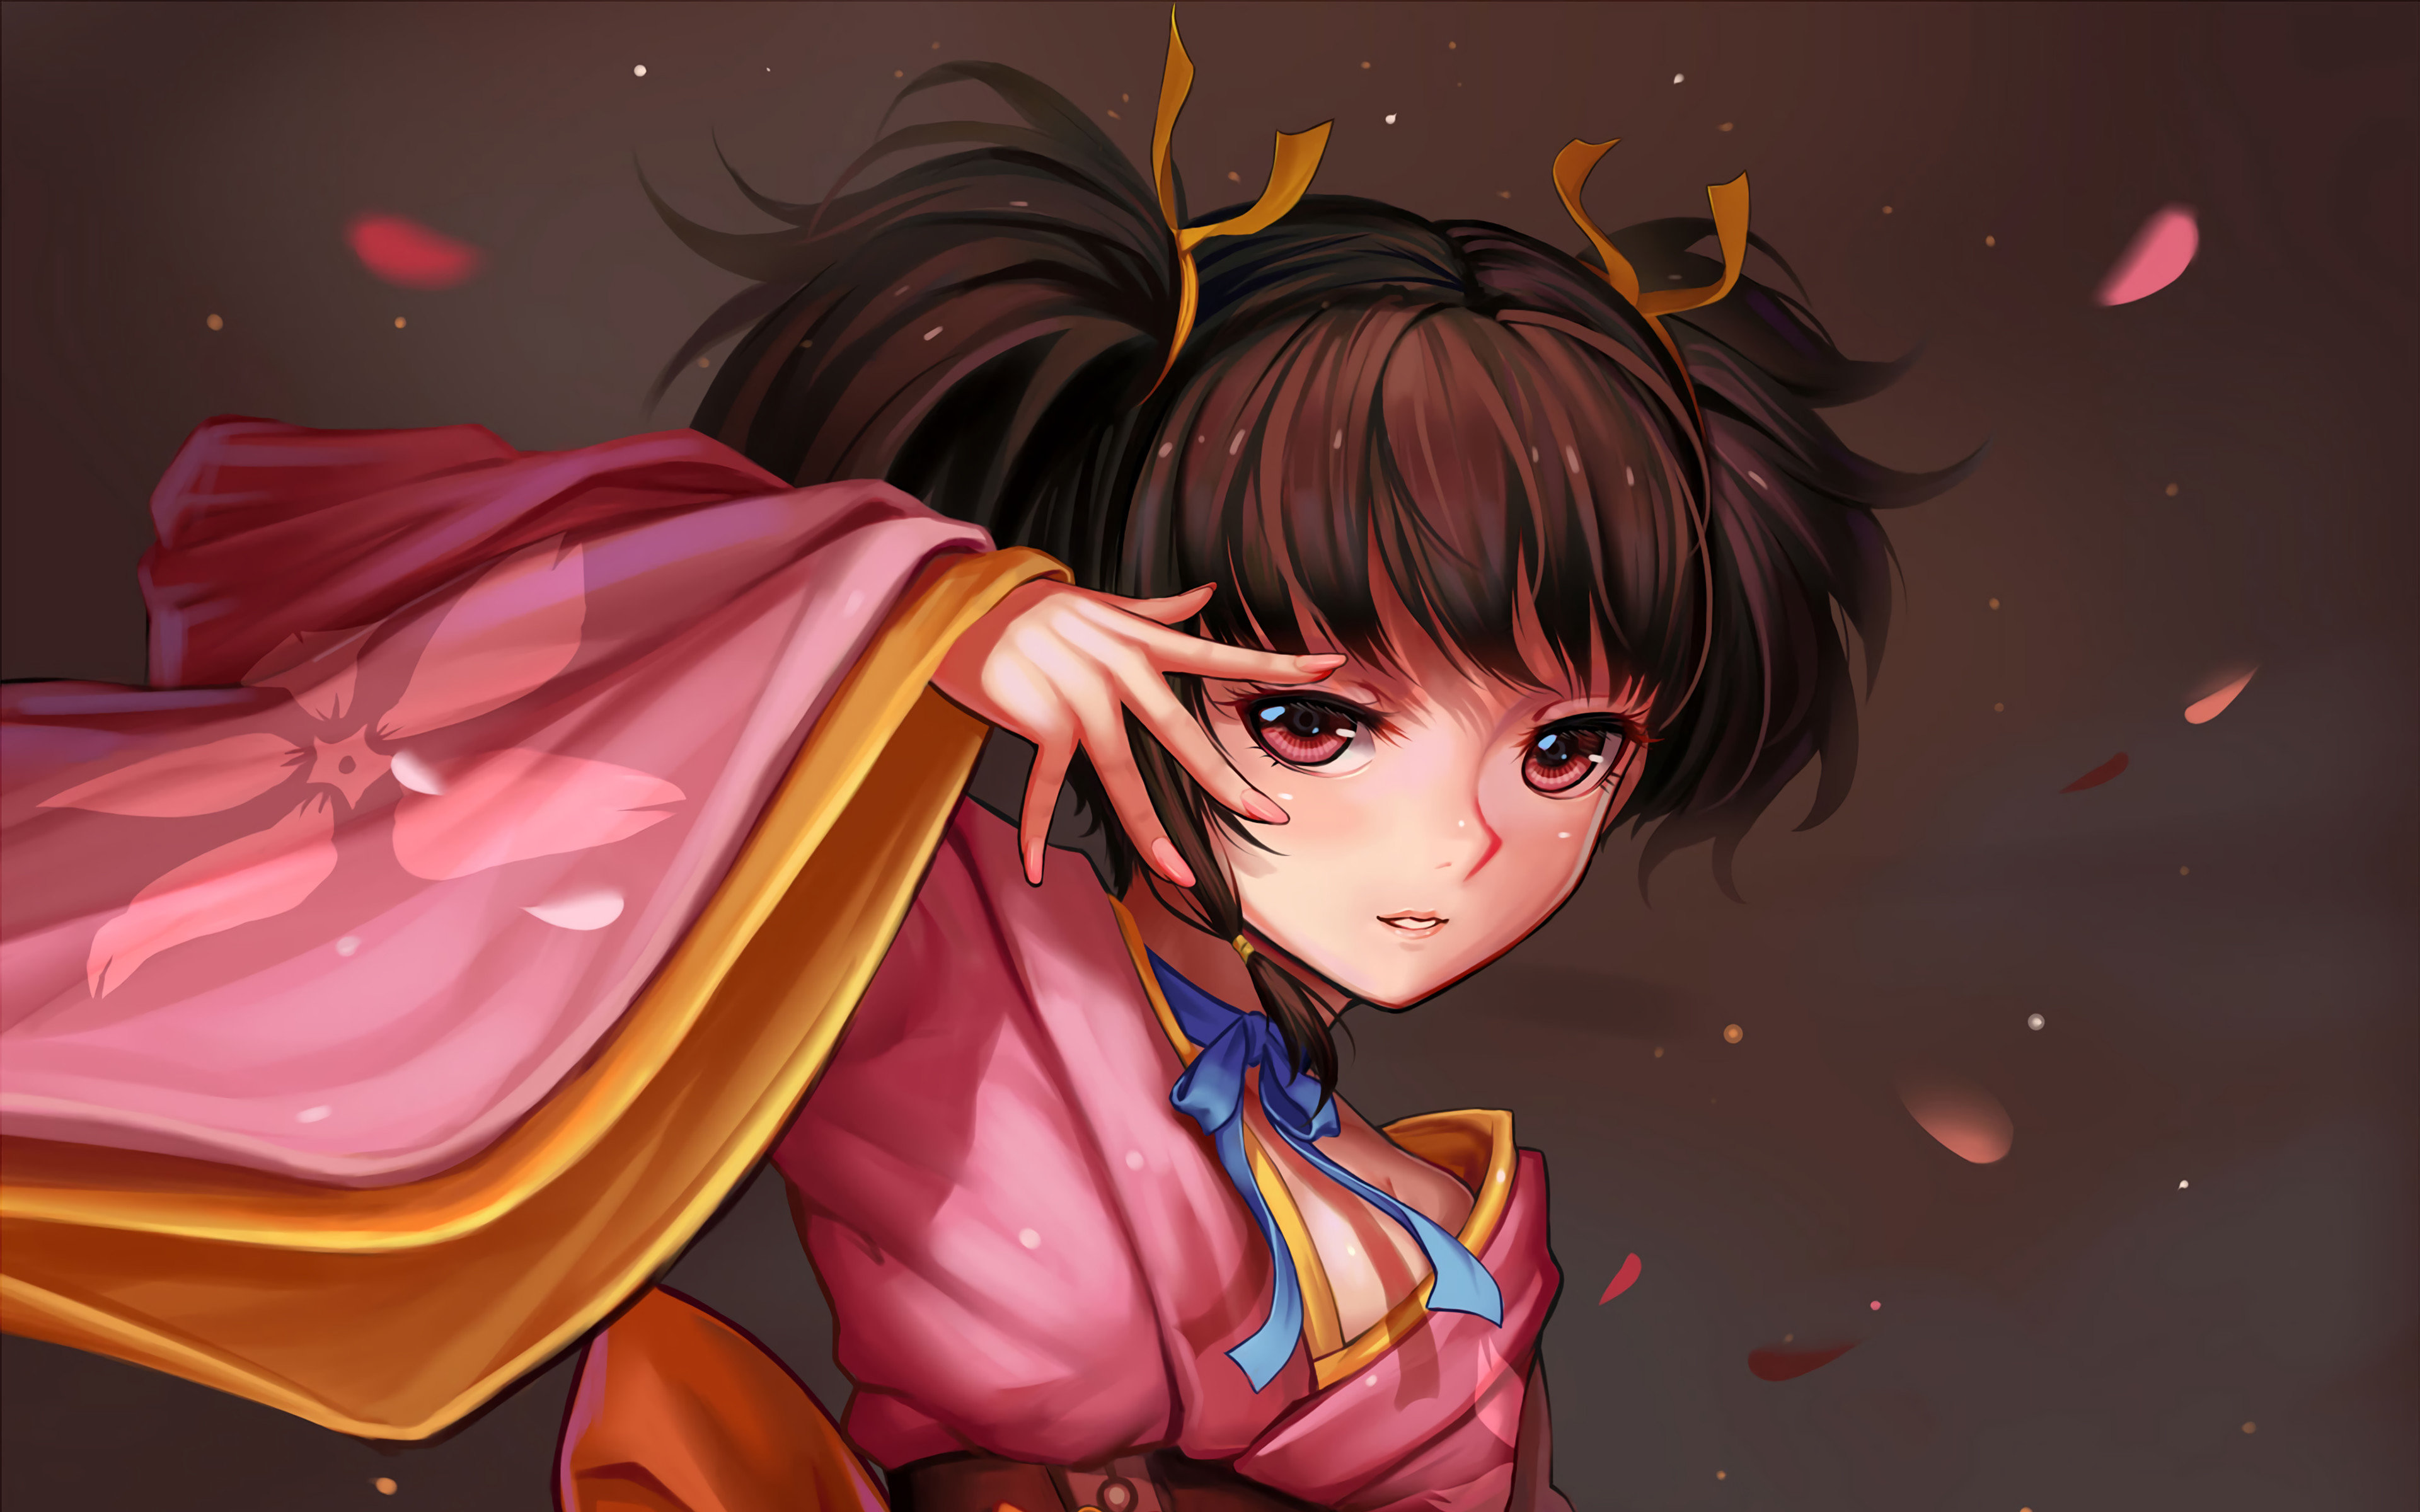 Best Kabaneri Of The Iron Fortress wallpaper ID:116876 for High Resolution hd 3840x2400 desktop